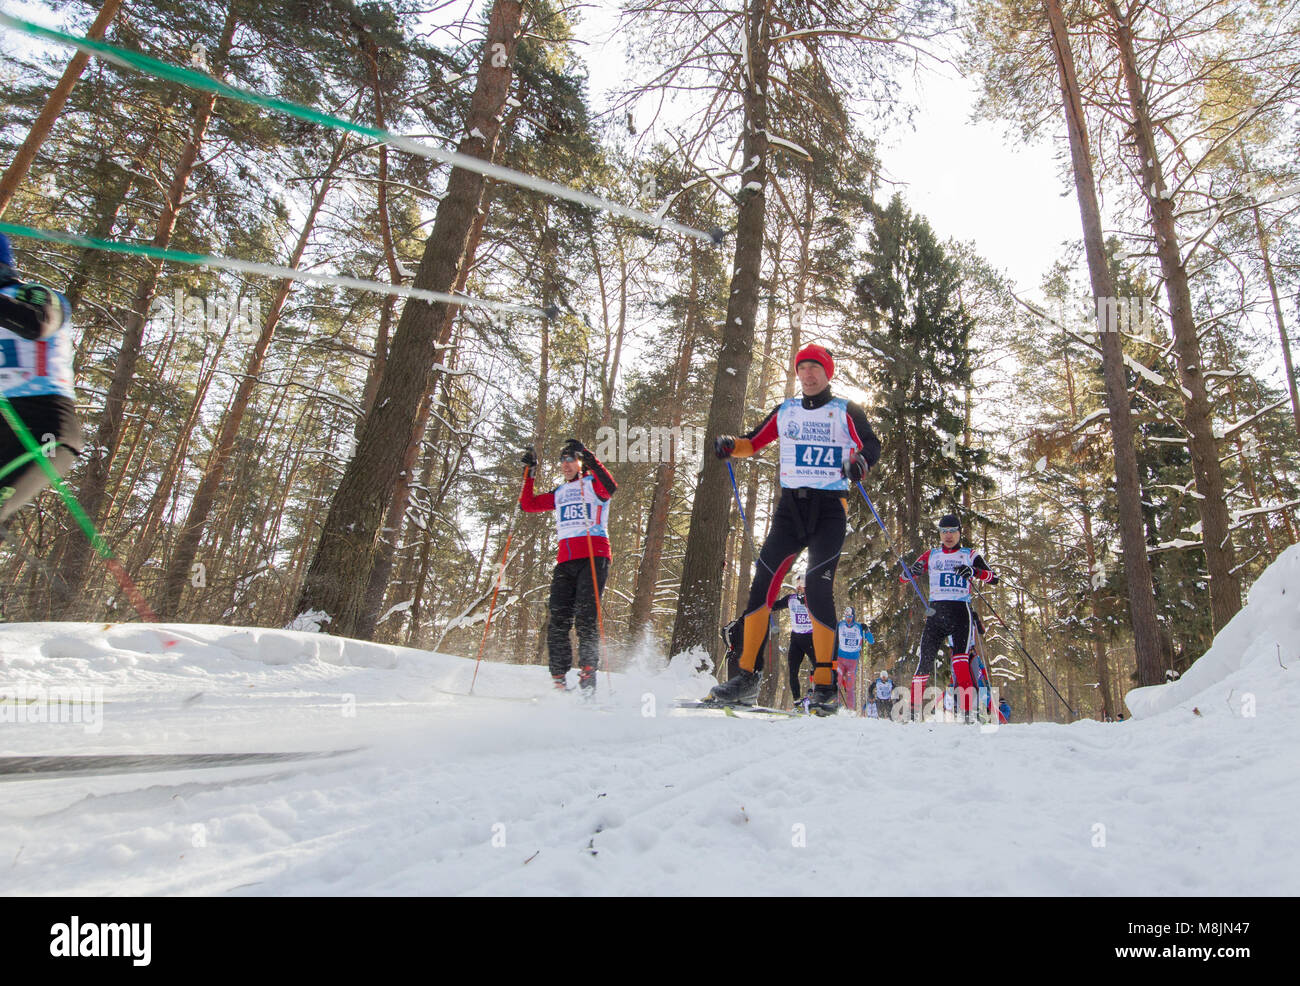 KAZAN, RUSSIA - March, 2018: professional winter ski race with many athletes running one after the other, wide angle - Stock Image